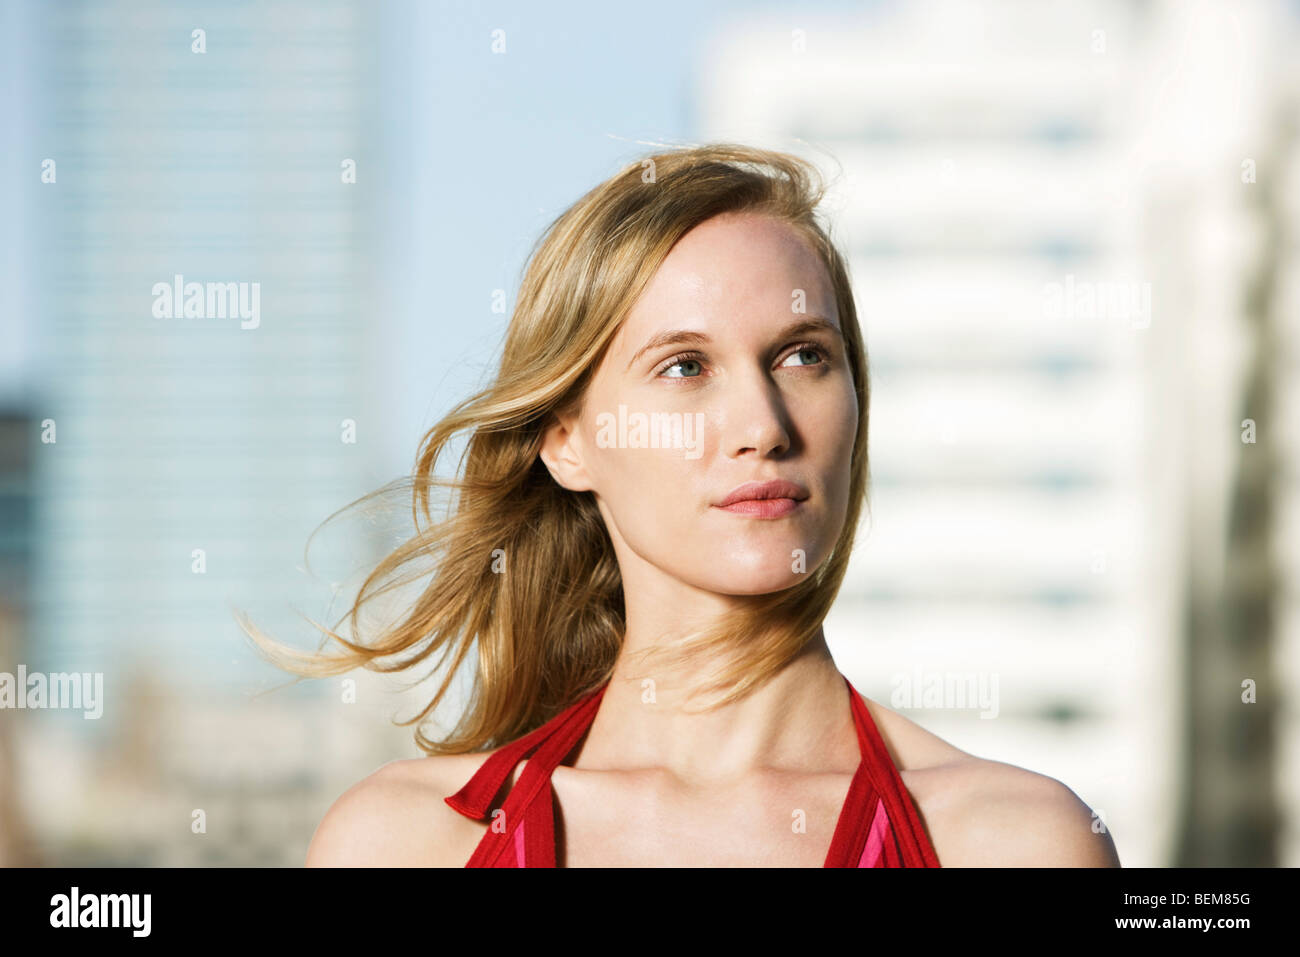 Young woman outdoors, looking away in thought, hair tousled by breeze - Stock Image